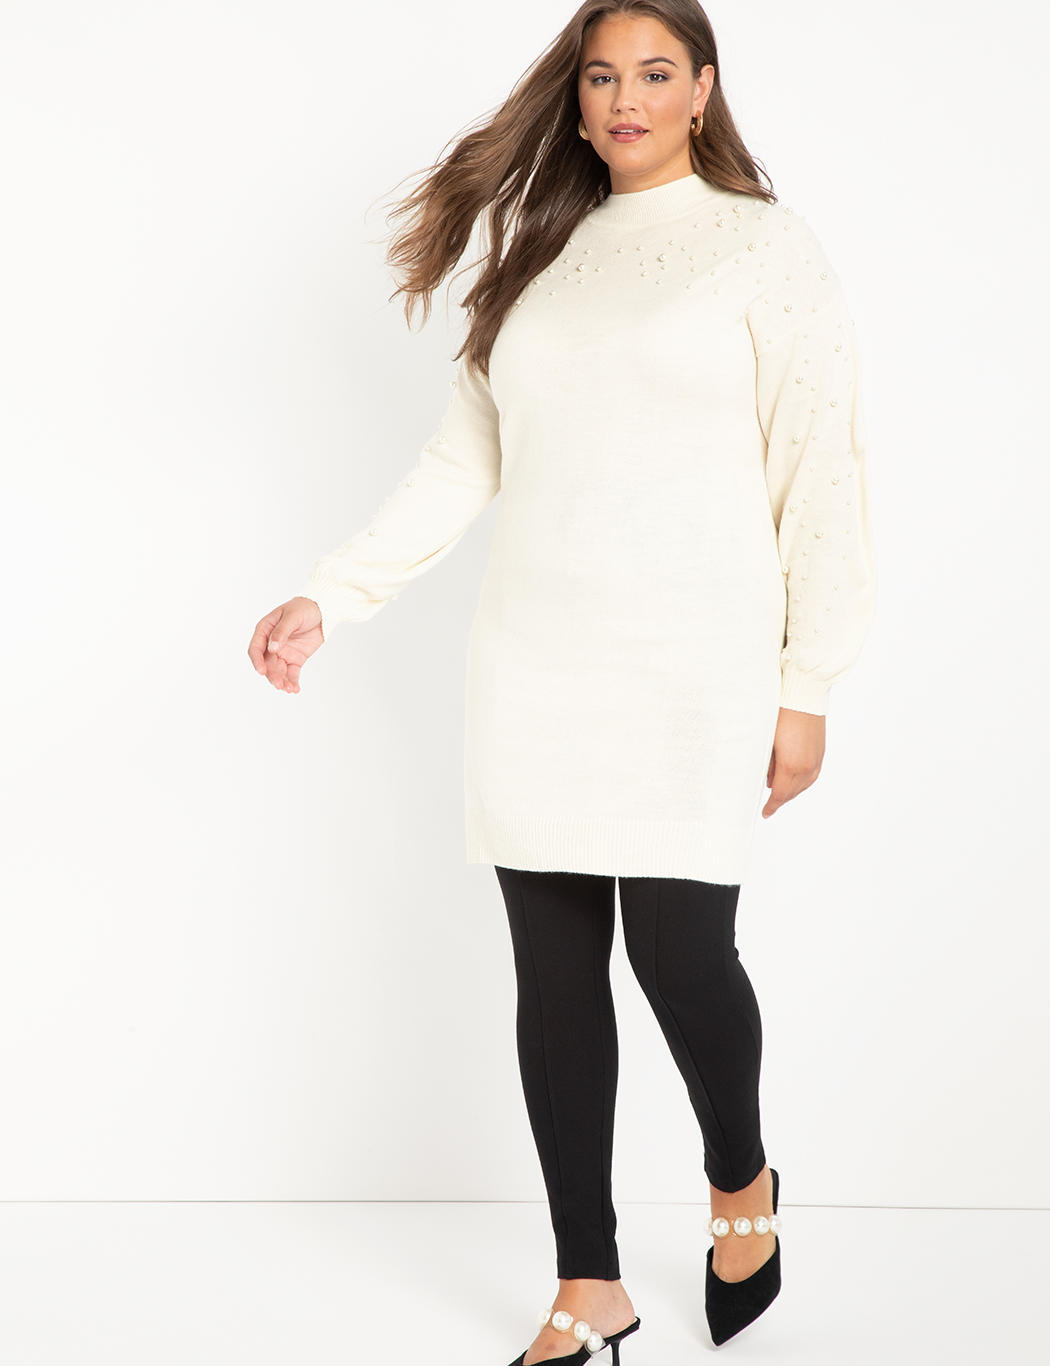 ELOQUII Elements Pearl Embellished Sweater Dress